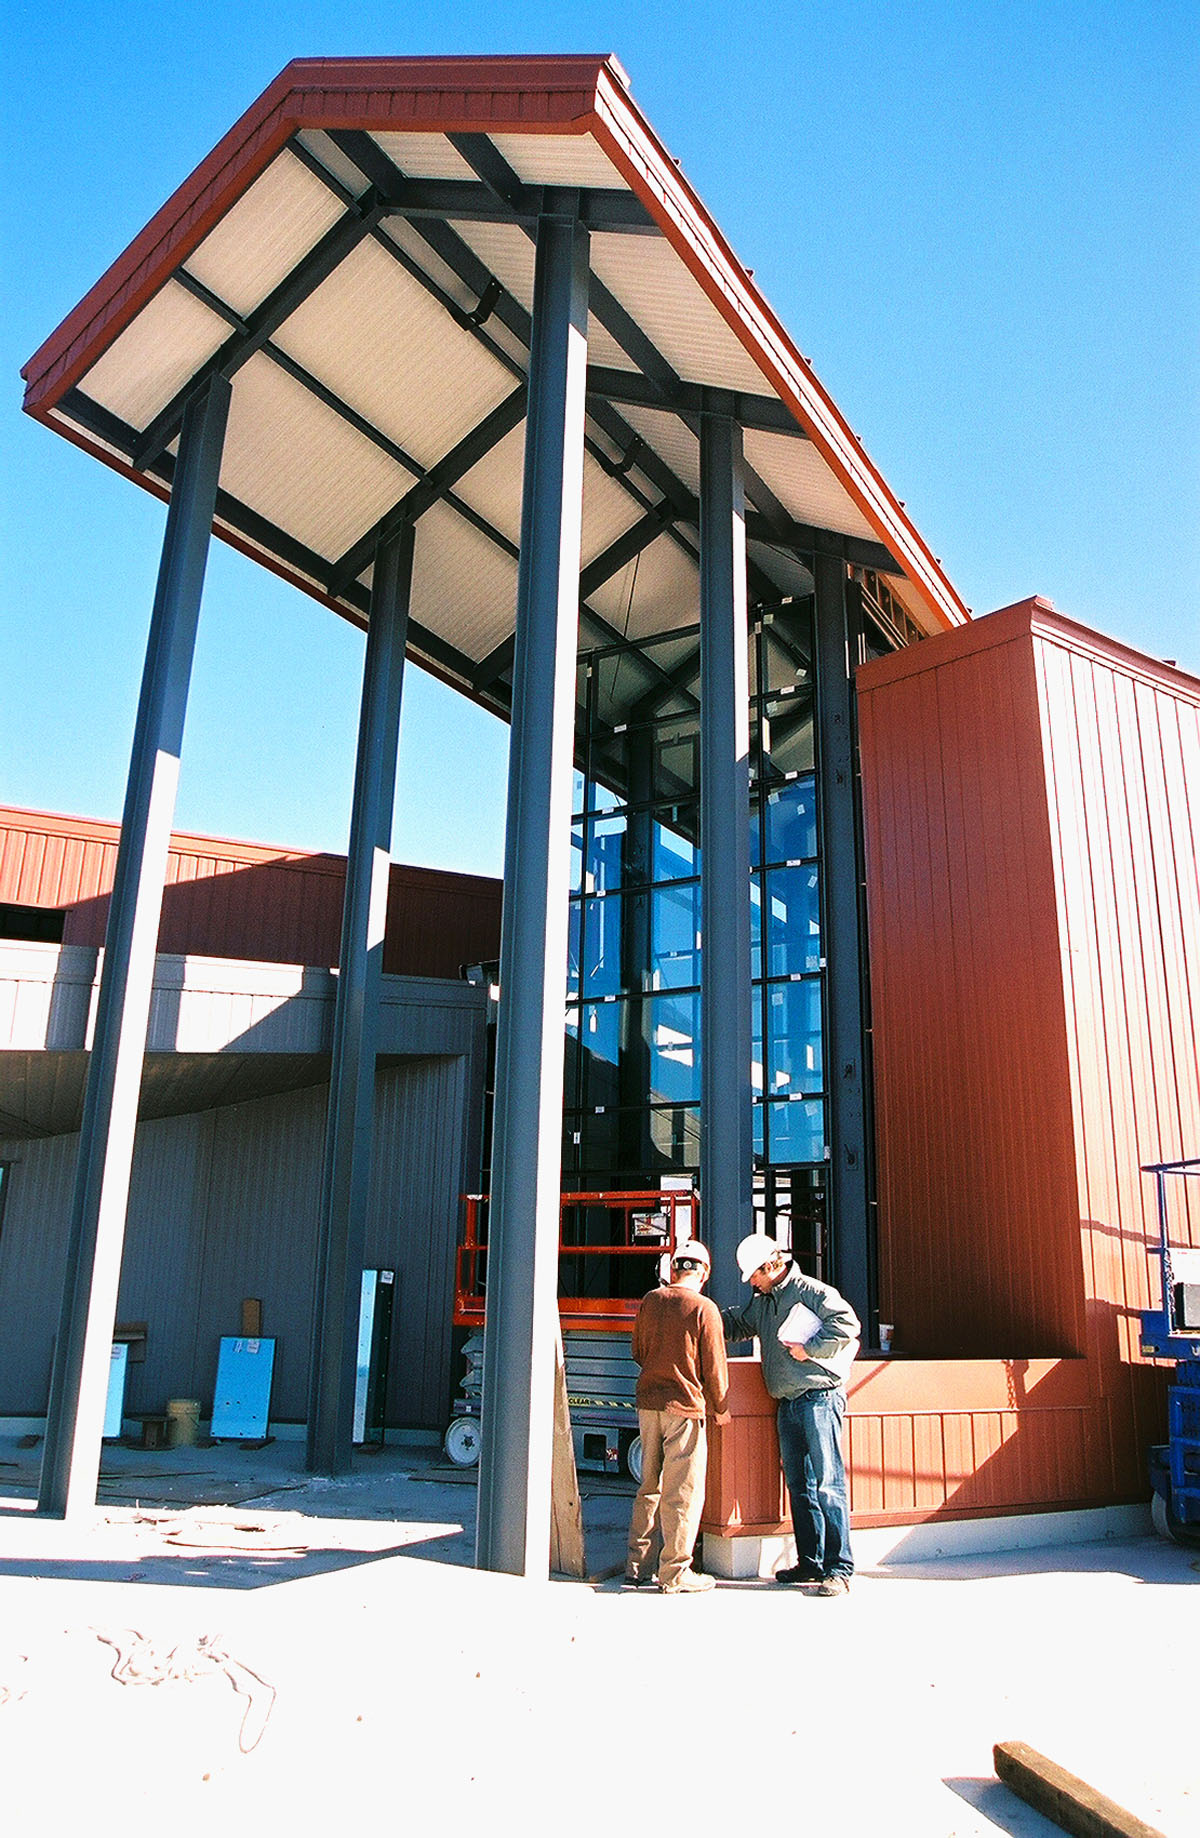 Two men in hardhats talk near the steel beams at the entrance of the building during construction.